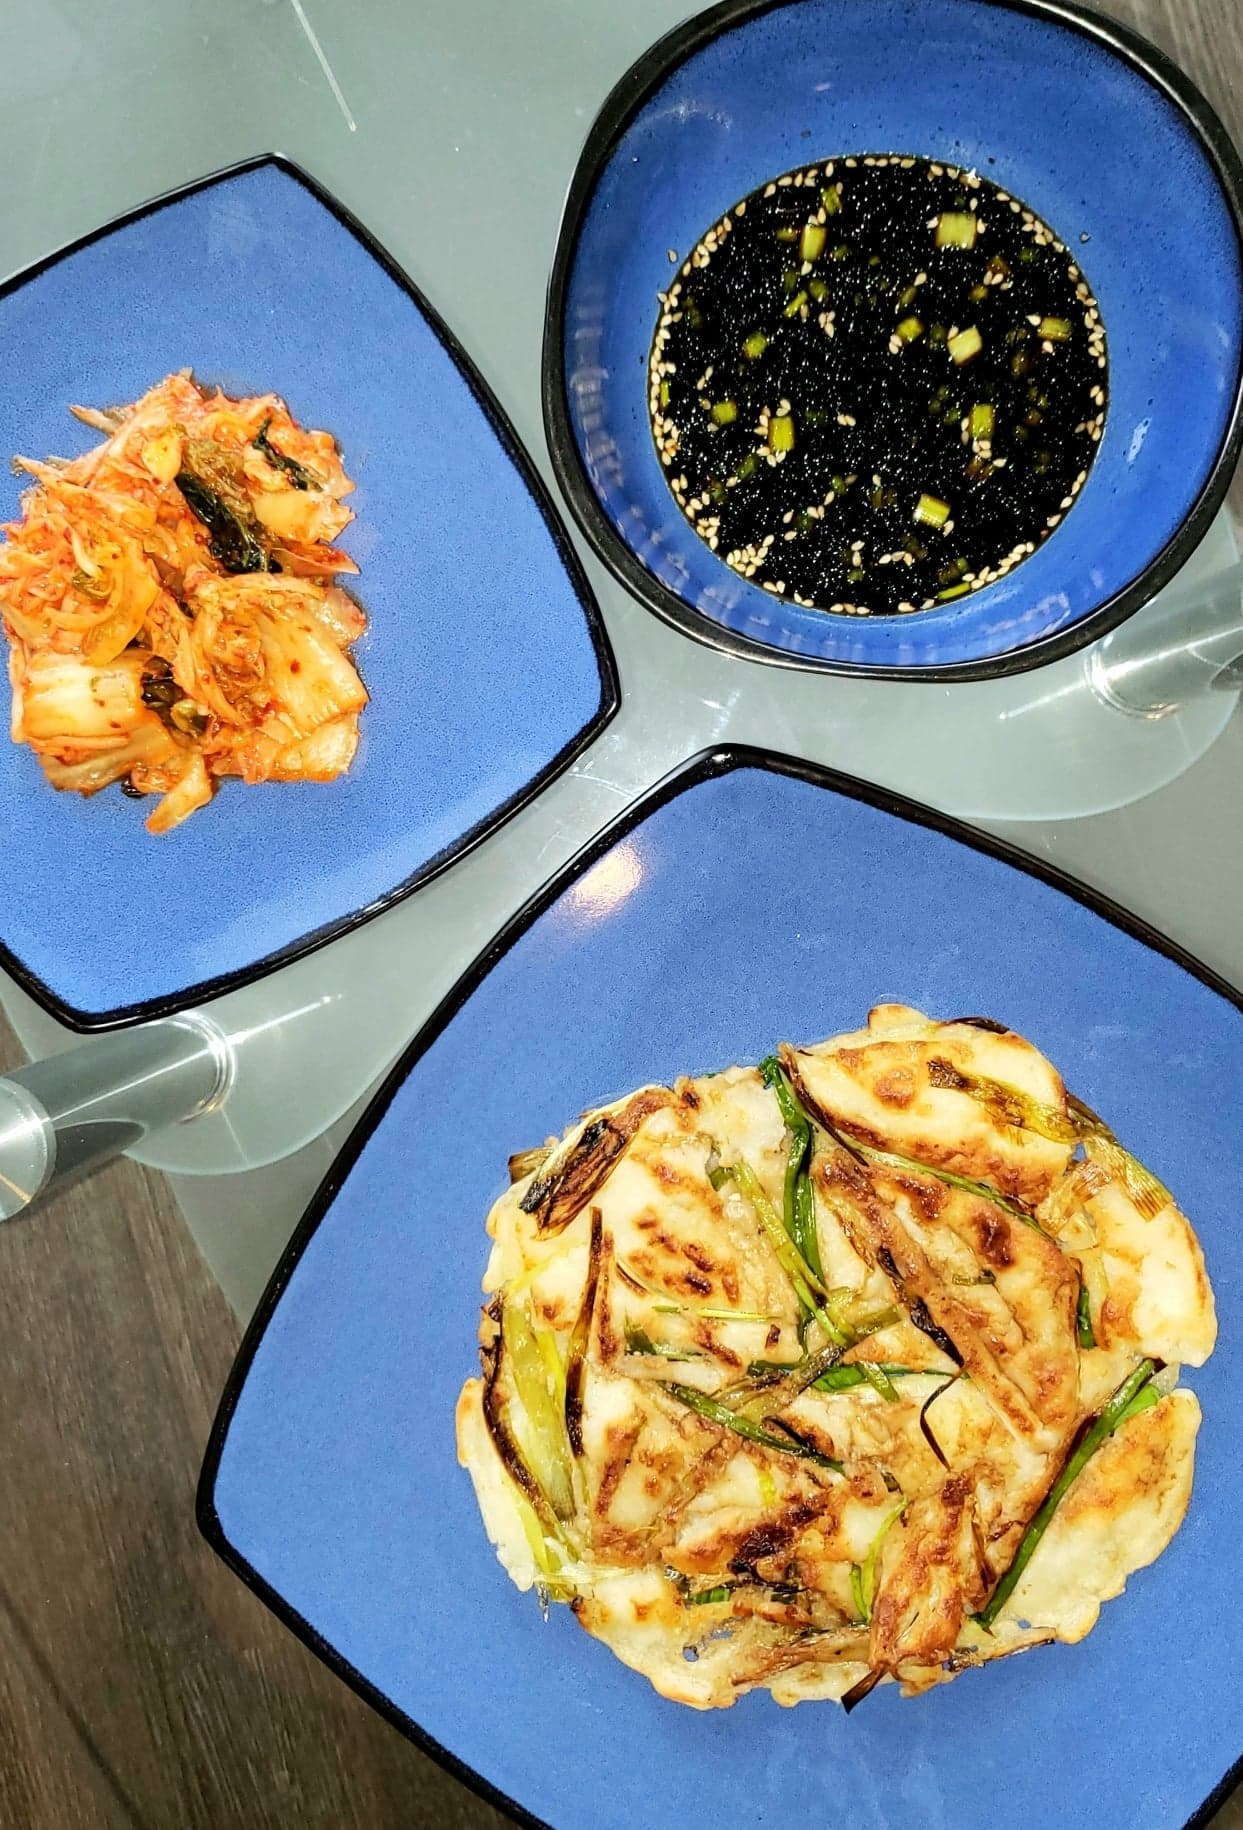 A top down view of the Korean pancake, a plate of kimchi, and the dipping sauce on a table